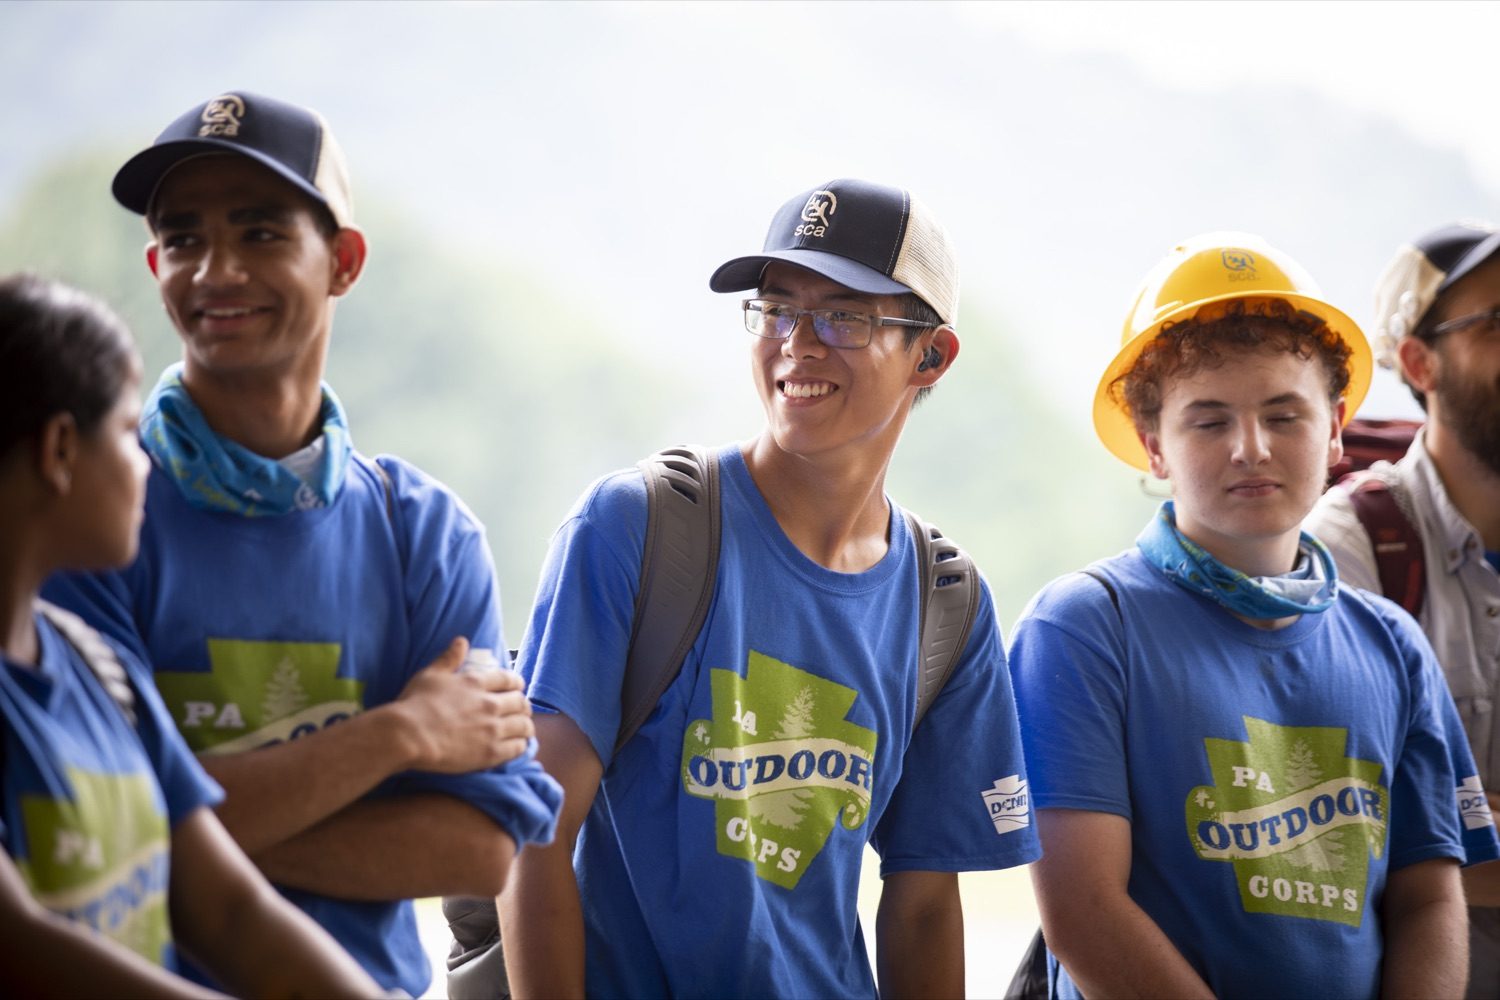 """<a href=""""https://filesource.wostreaming.net/commonwealthofpa/photo/18880_fl_outdooropportunites_cz_23.jpg"""" target=""""_blank"""">⇣Download Photo<br></a>Secretary of DCNR Cindy Dunn talks to members of the PA Outdoor Corps at Point State Park to promote outdoor opportunities, in Pittsburgh, PA on July 7, 2021."""